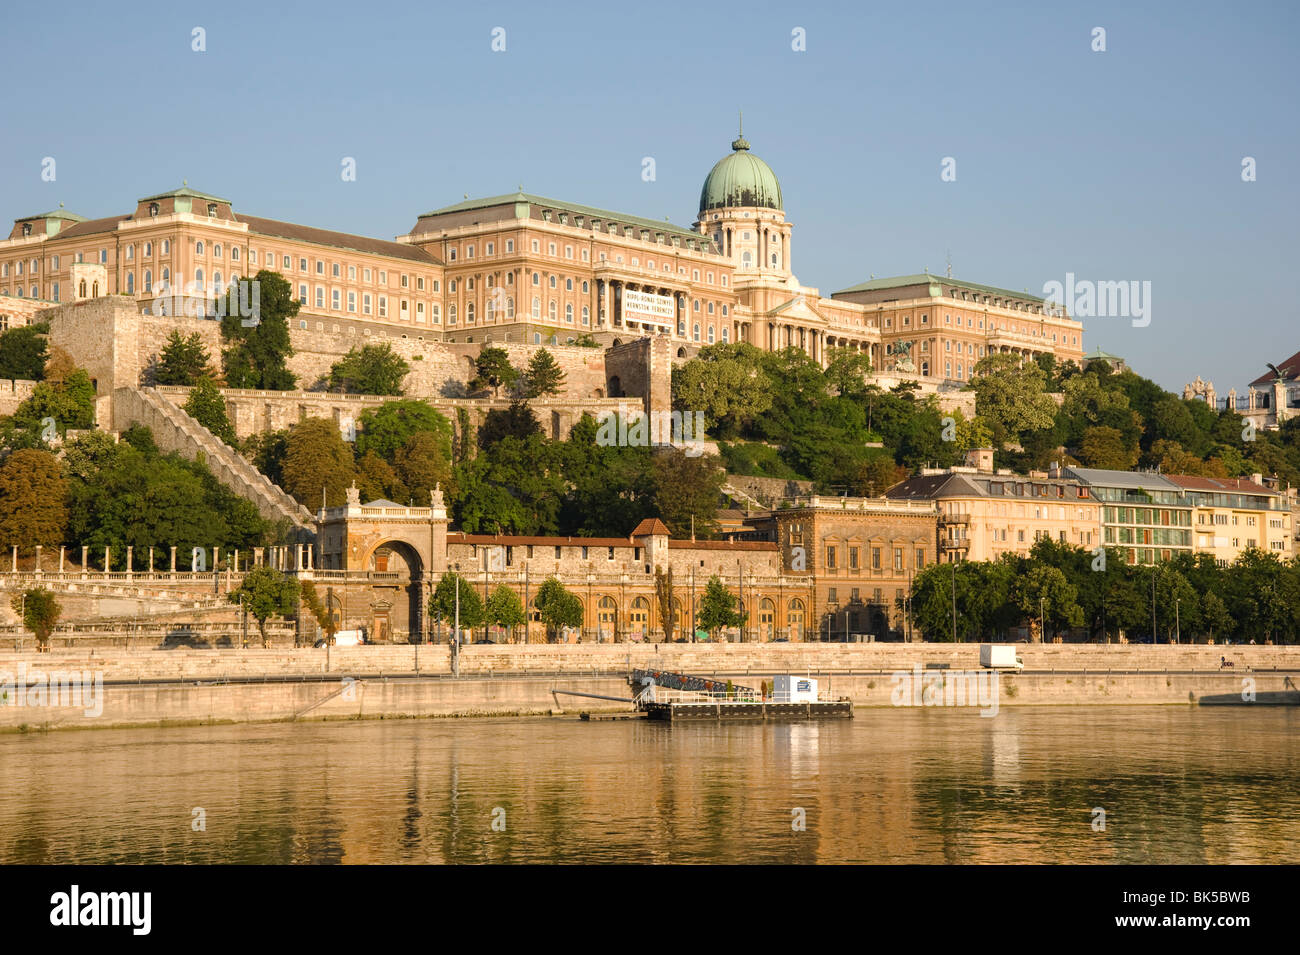 The Royal Palace on Castle Hill seen from the Danube River, Budapest, Hungary, Europe - Stock Image